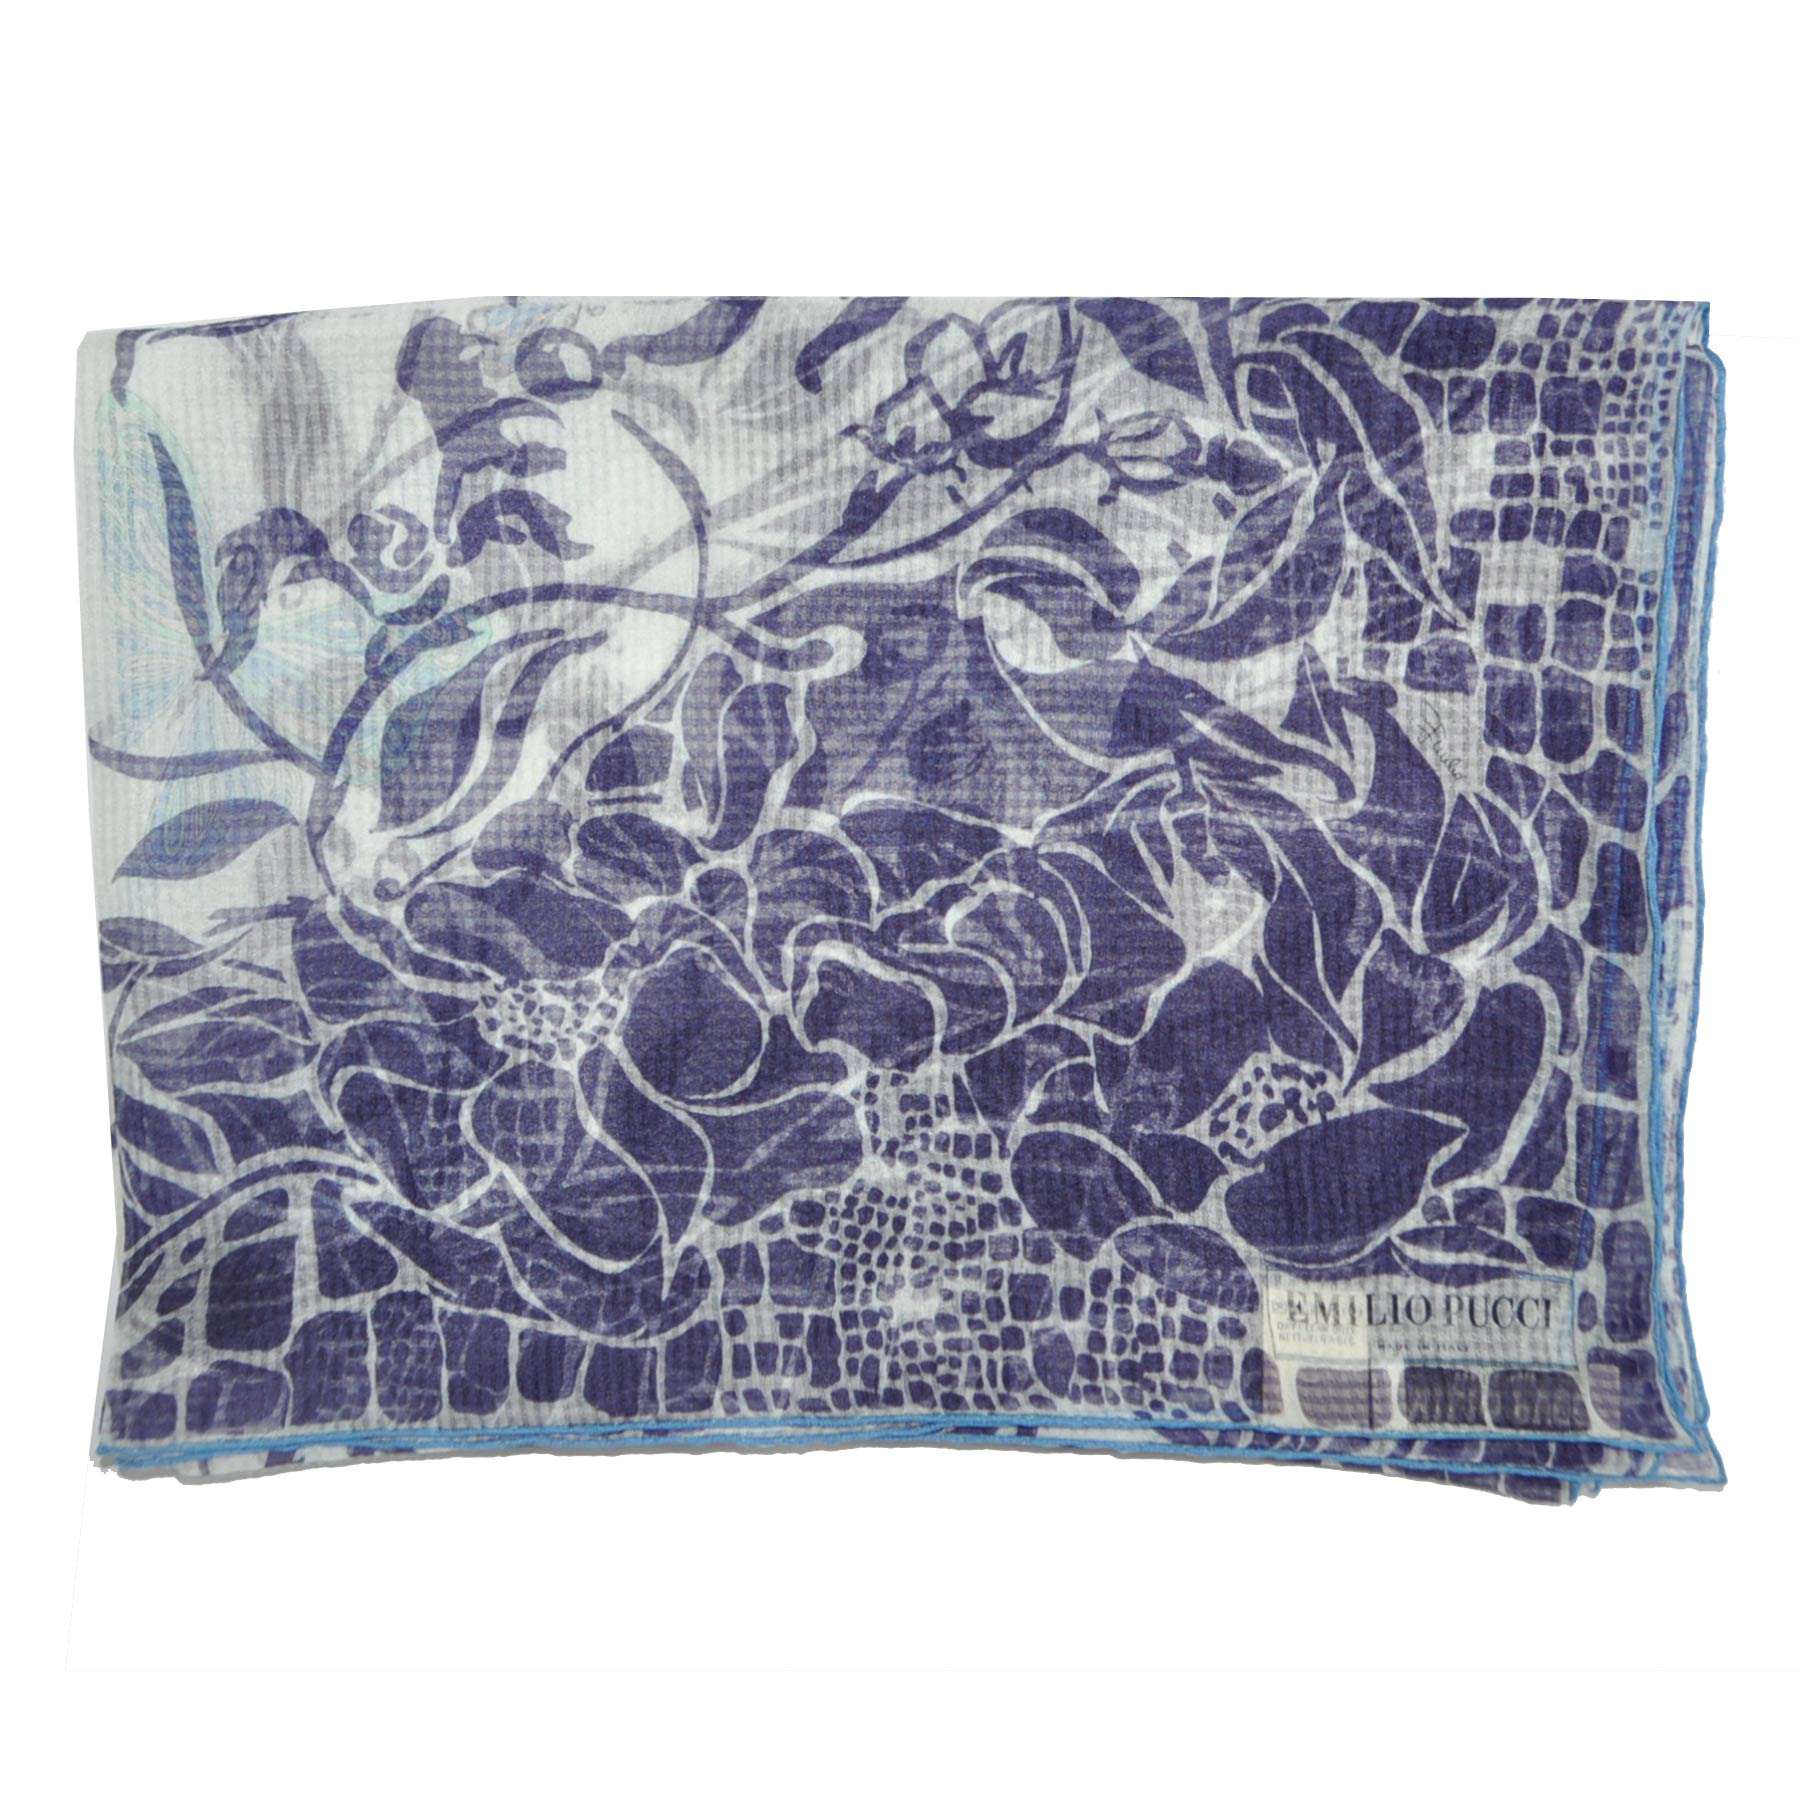 Emilio Pucci Scarf Purple Blue Floral & Butterfly